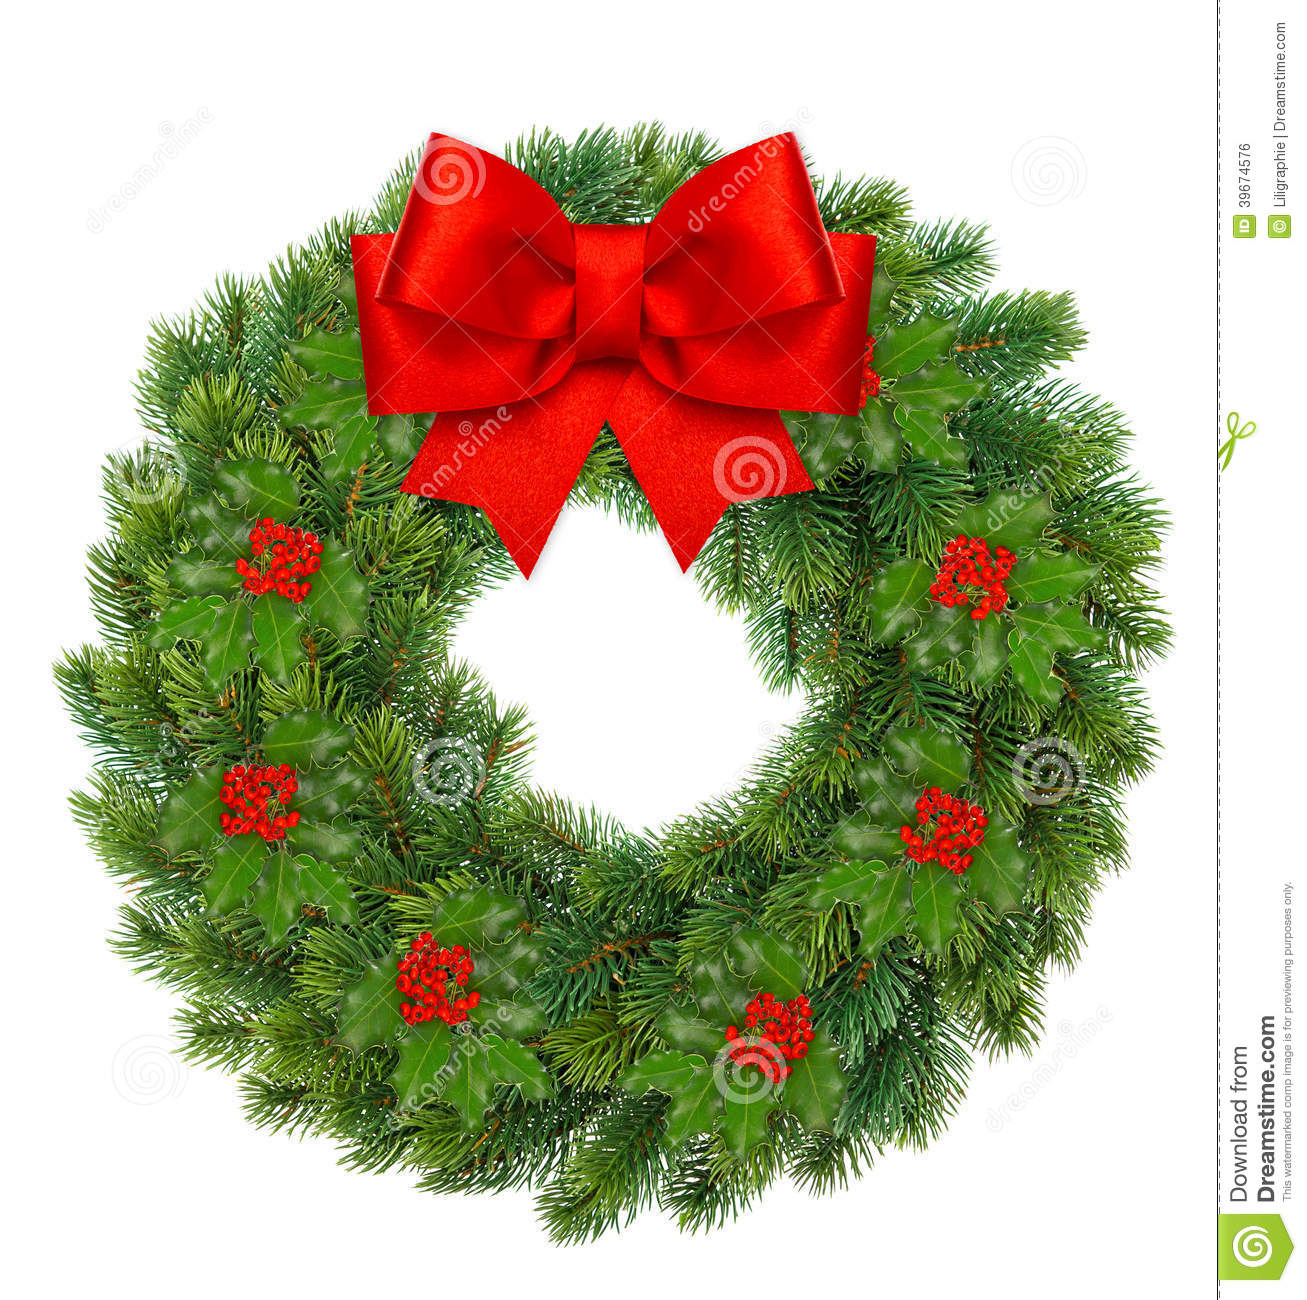 Why is holly a traditional christmas decoration - Royalty Free Stock Photo Download Christmas Wreath With Holly